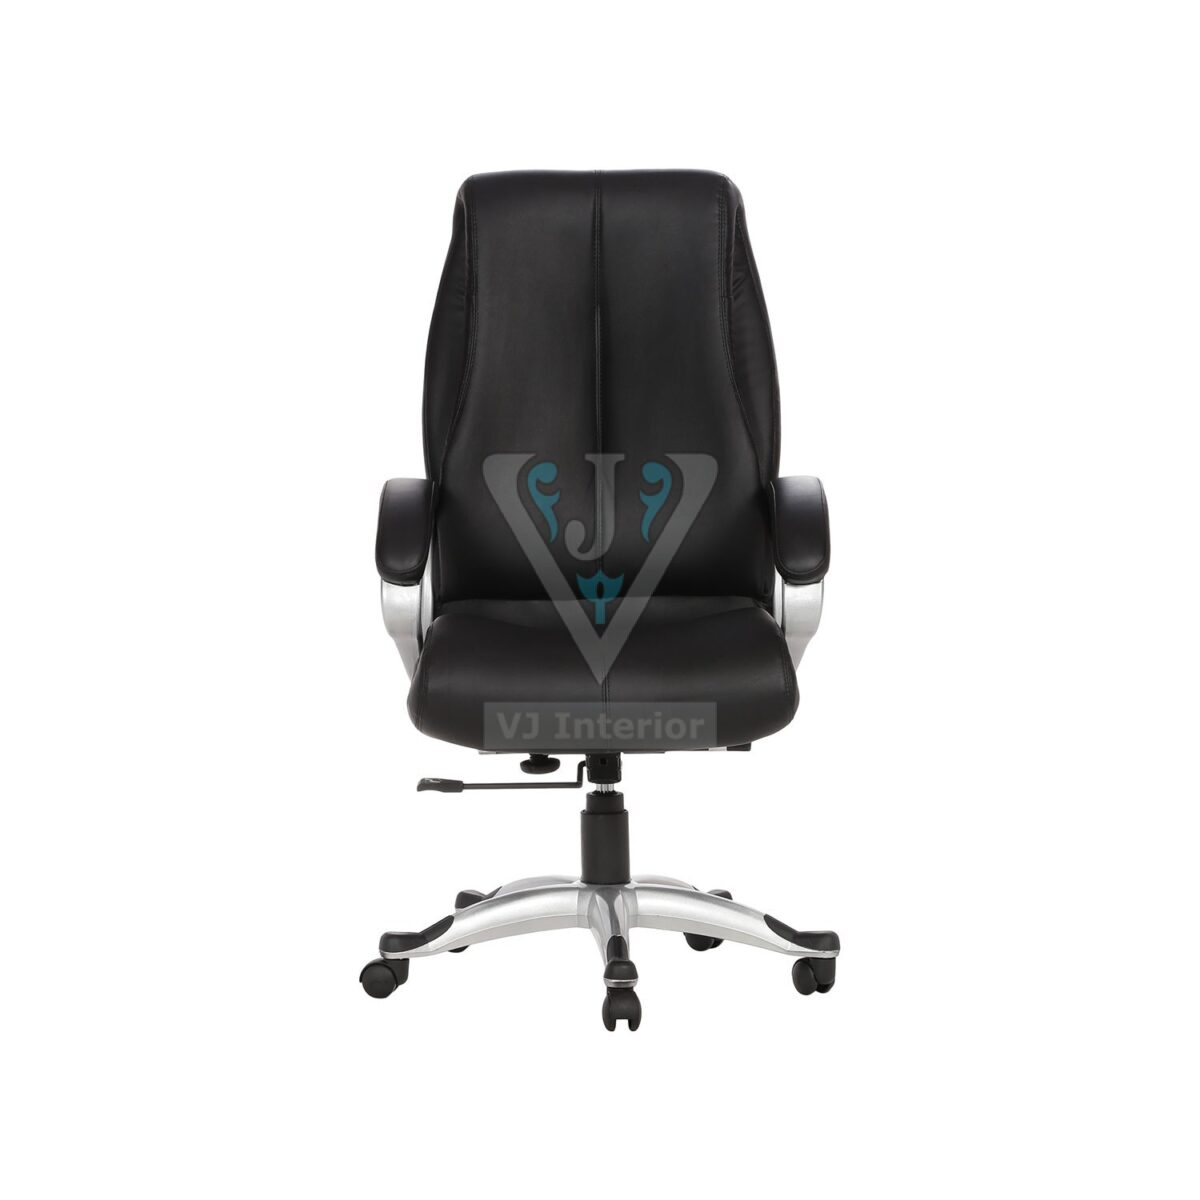 THE PUNTADA HB EXECUTIVE CHAIR BLACK